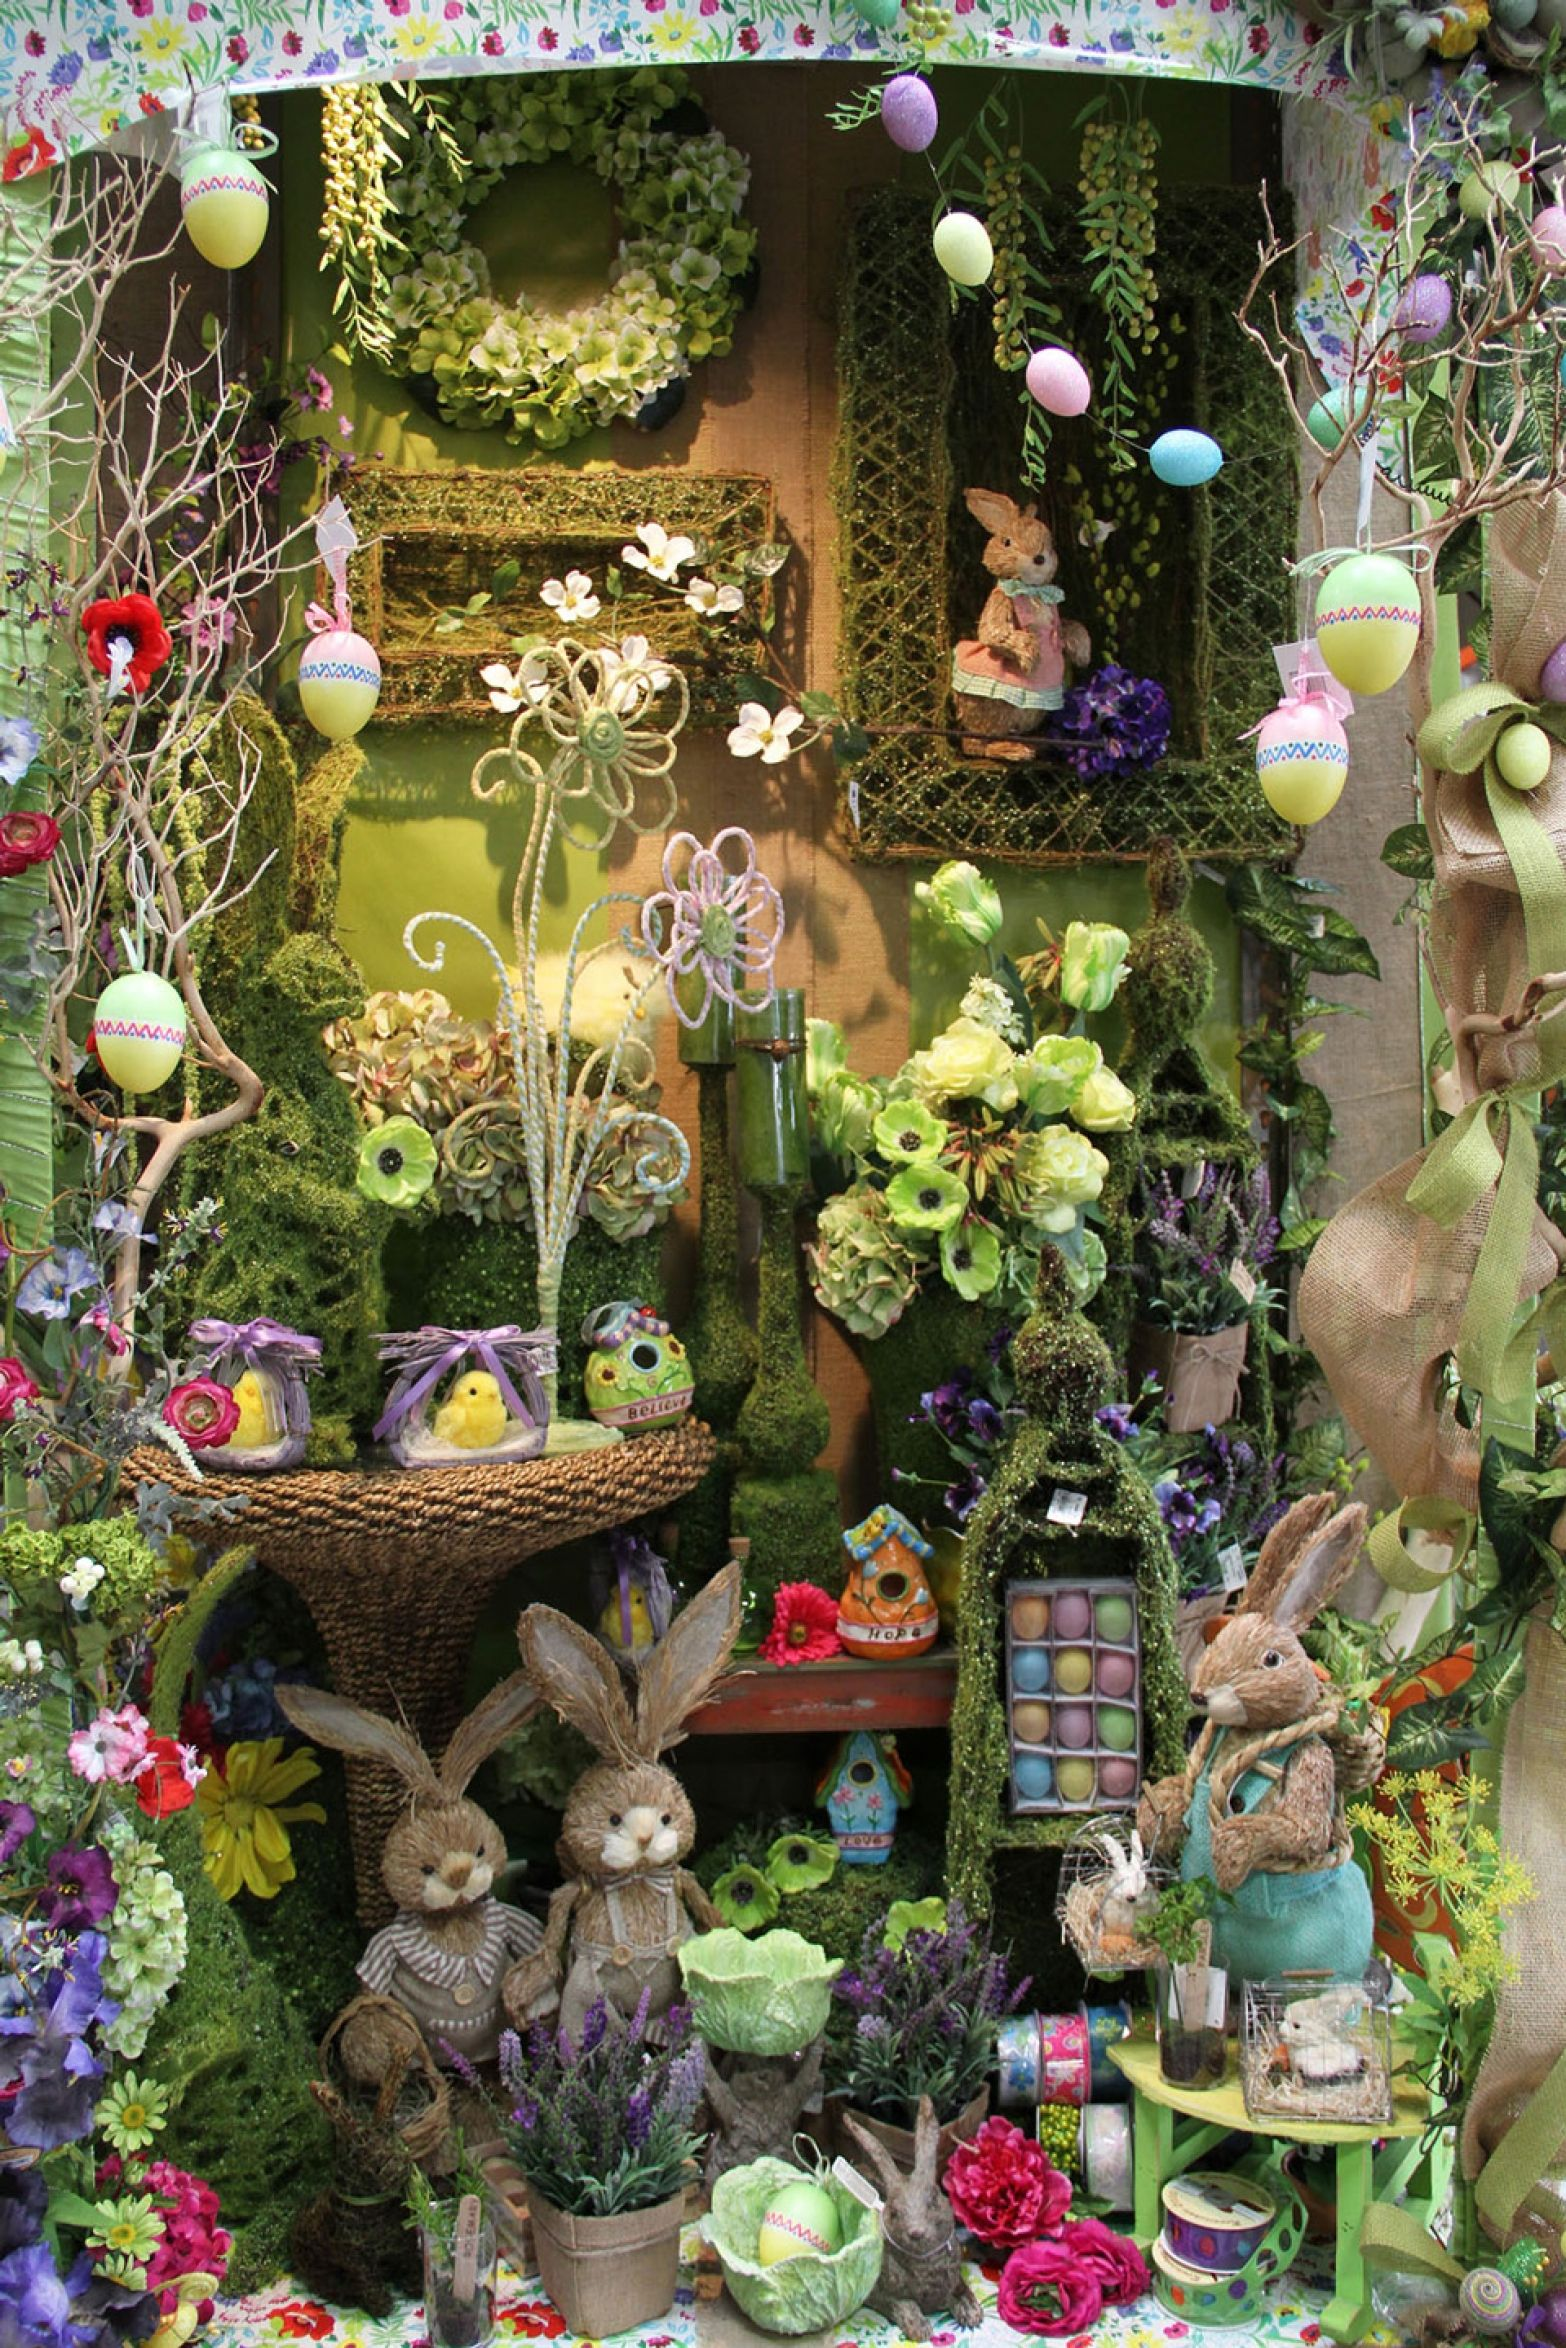 Window display ideas   creative easter window display ideas  window displays easter